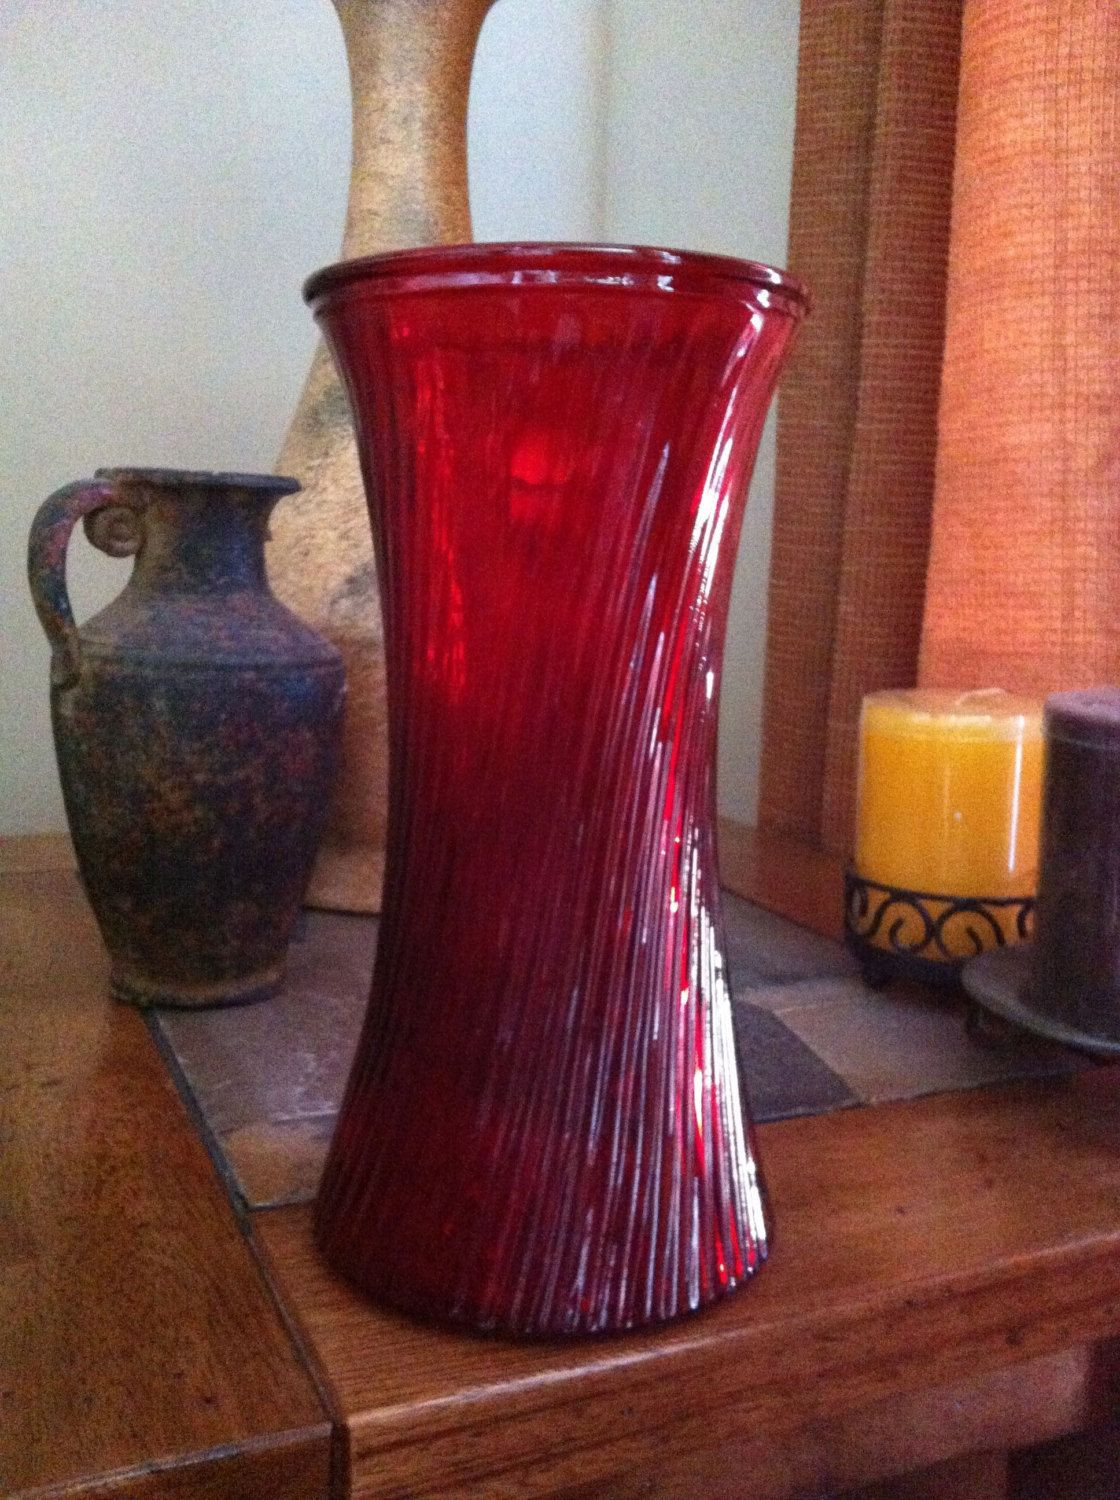 viking handmade vase of red 10 inch brody glass vase vintage vases and glass for red 10 inch brody glass vase